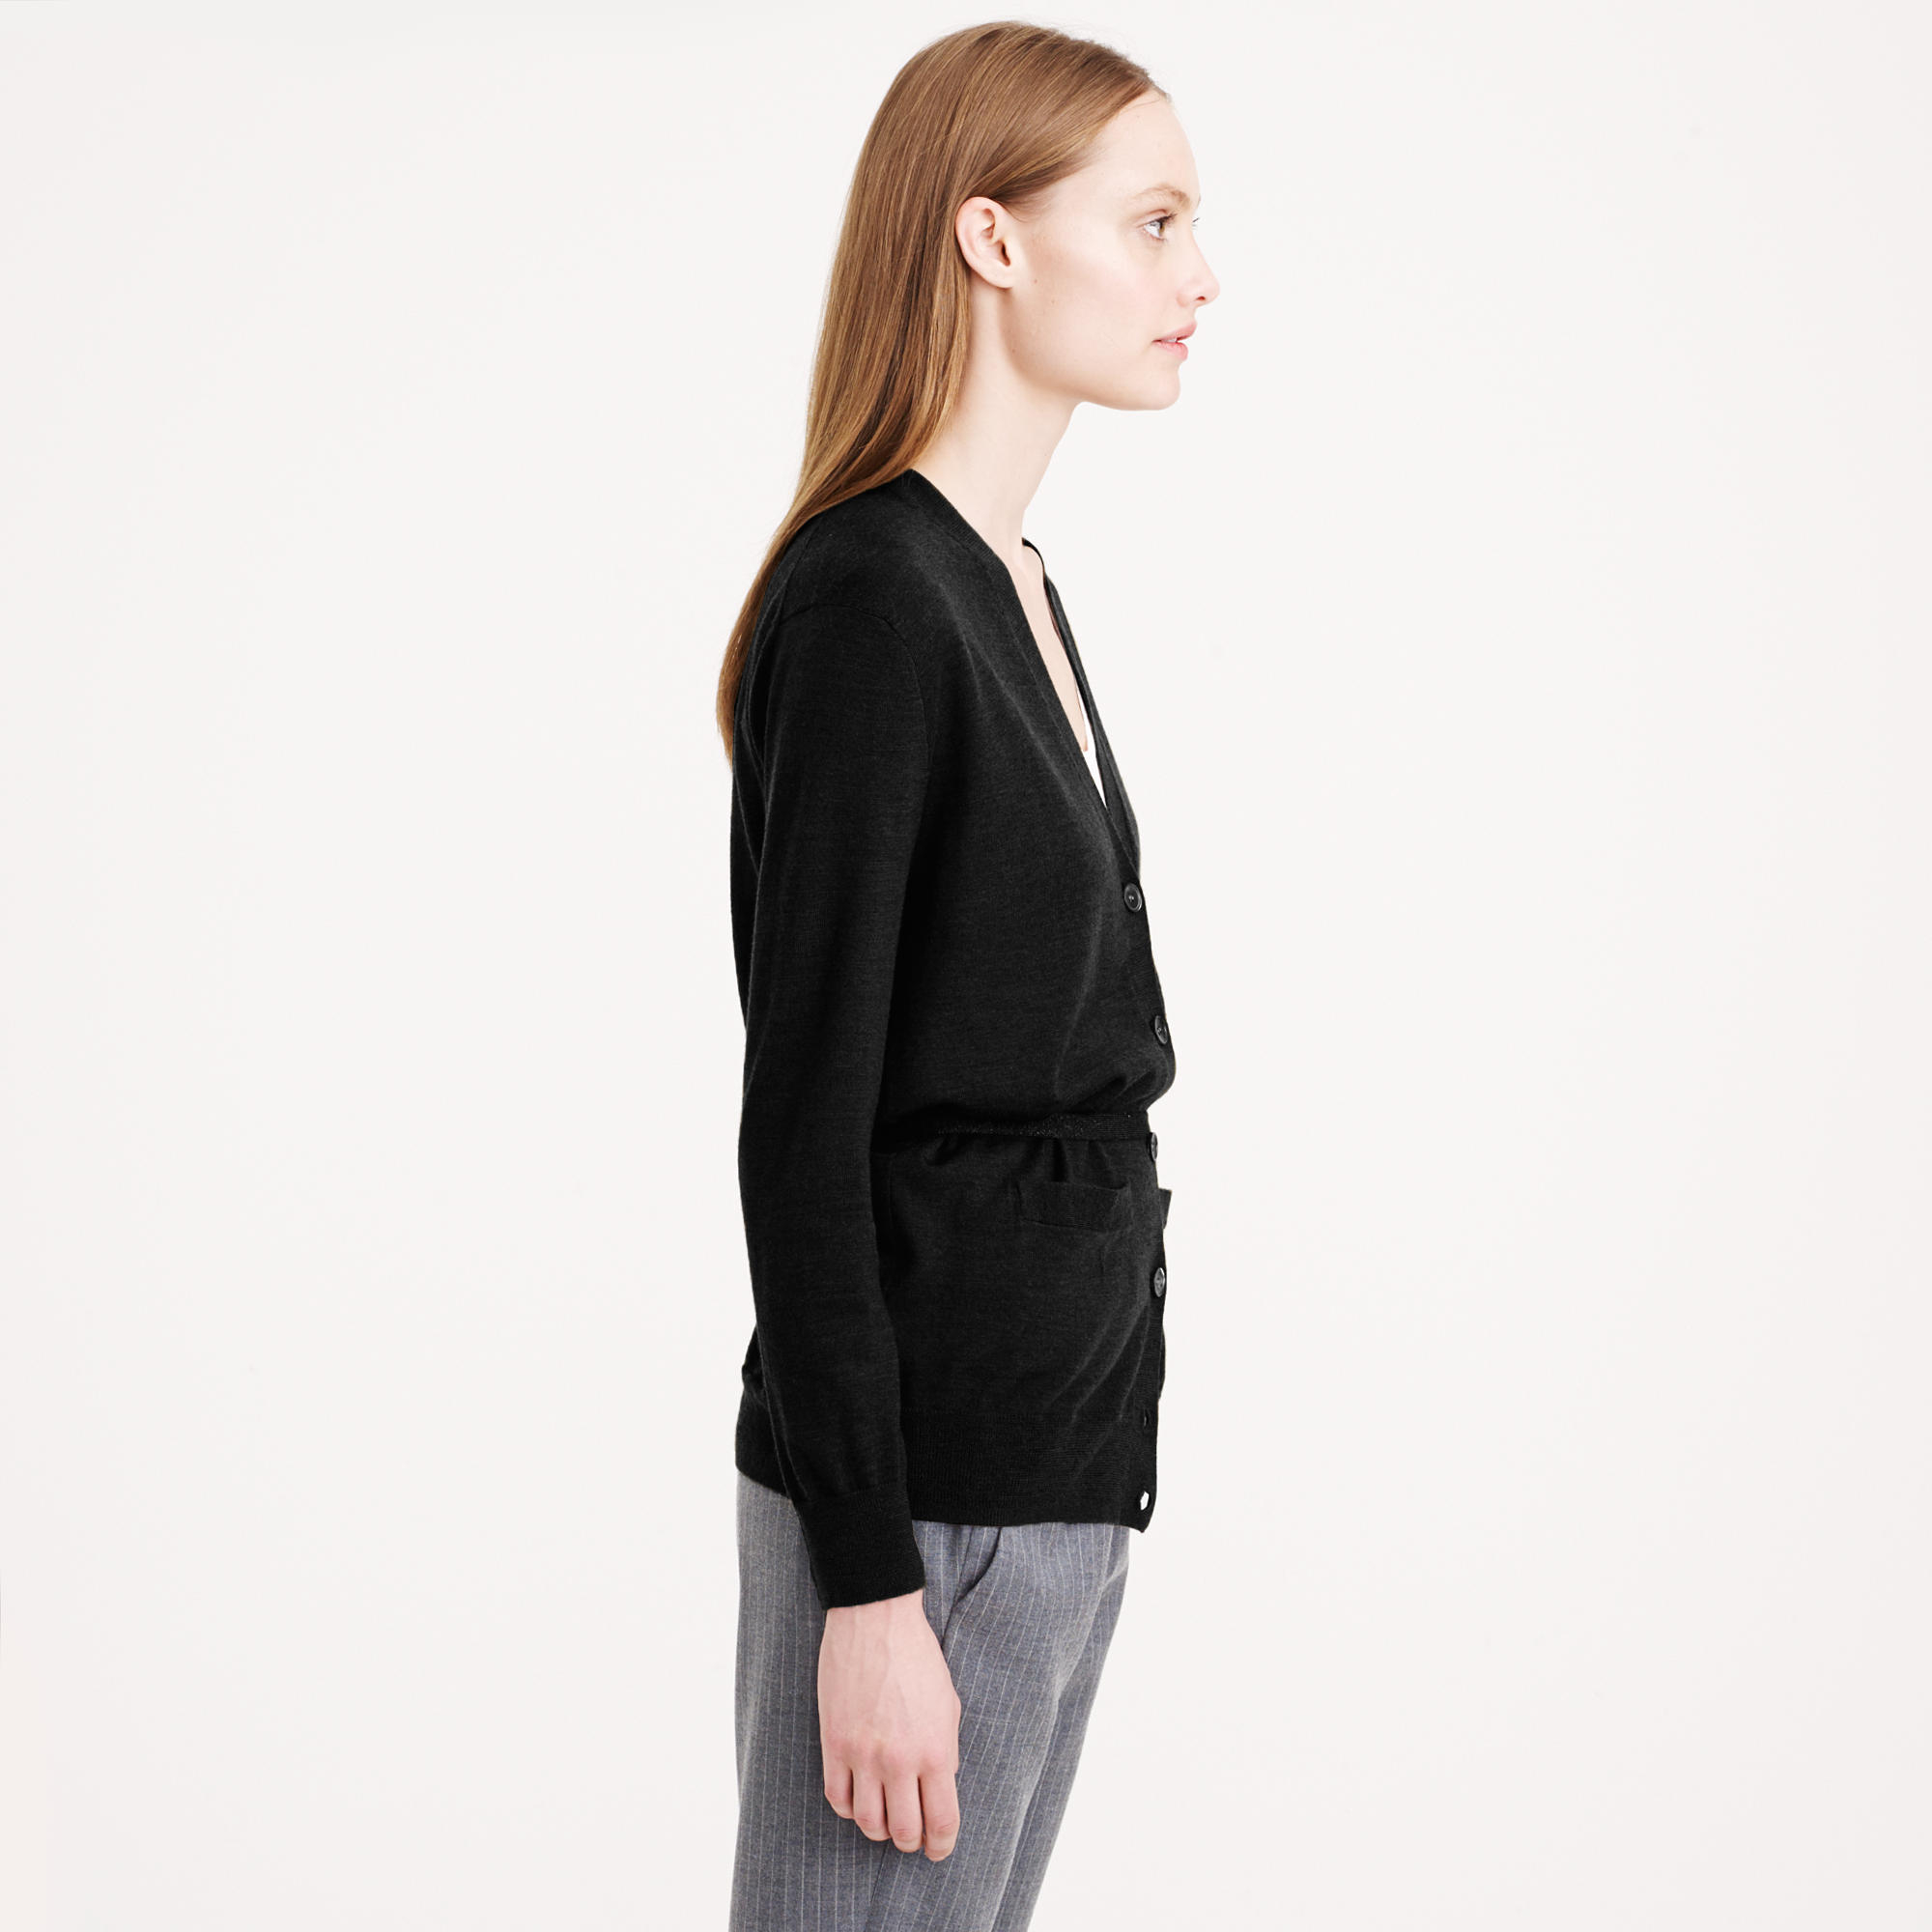 J.crew Petite Merino Wool Belted Cardigan in Black | Lyst